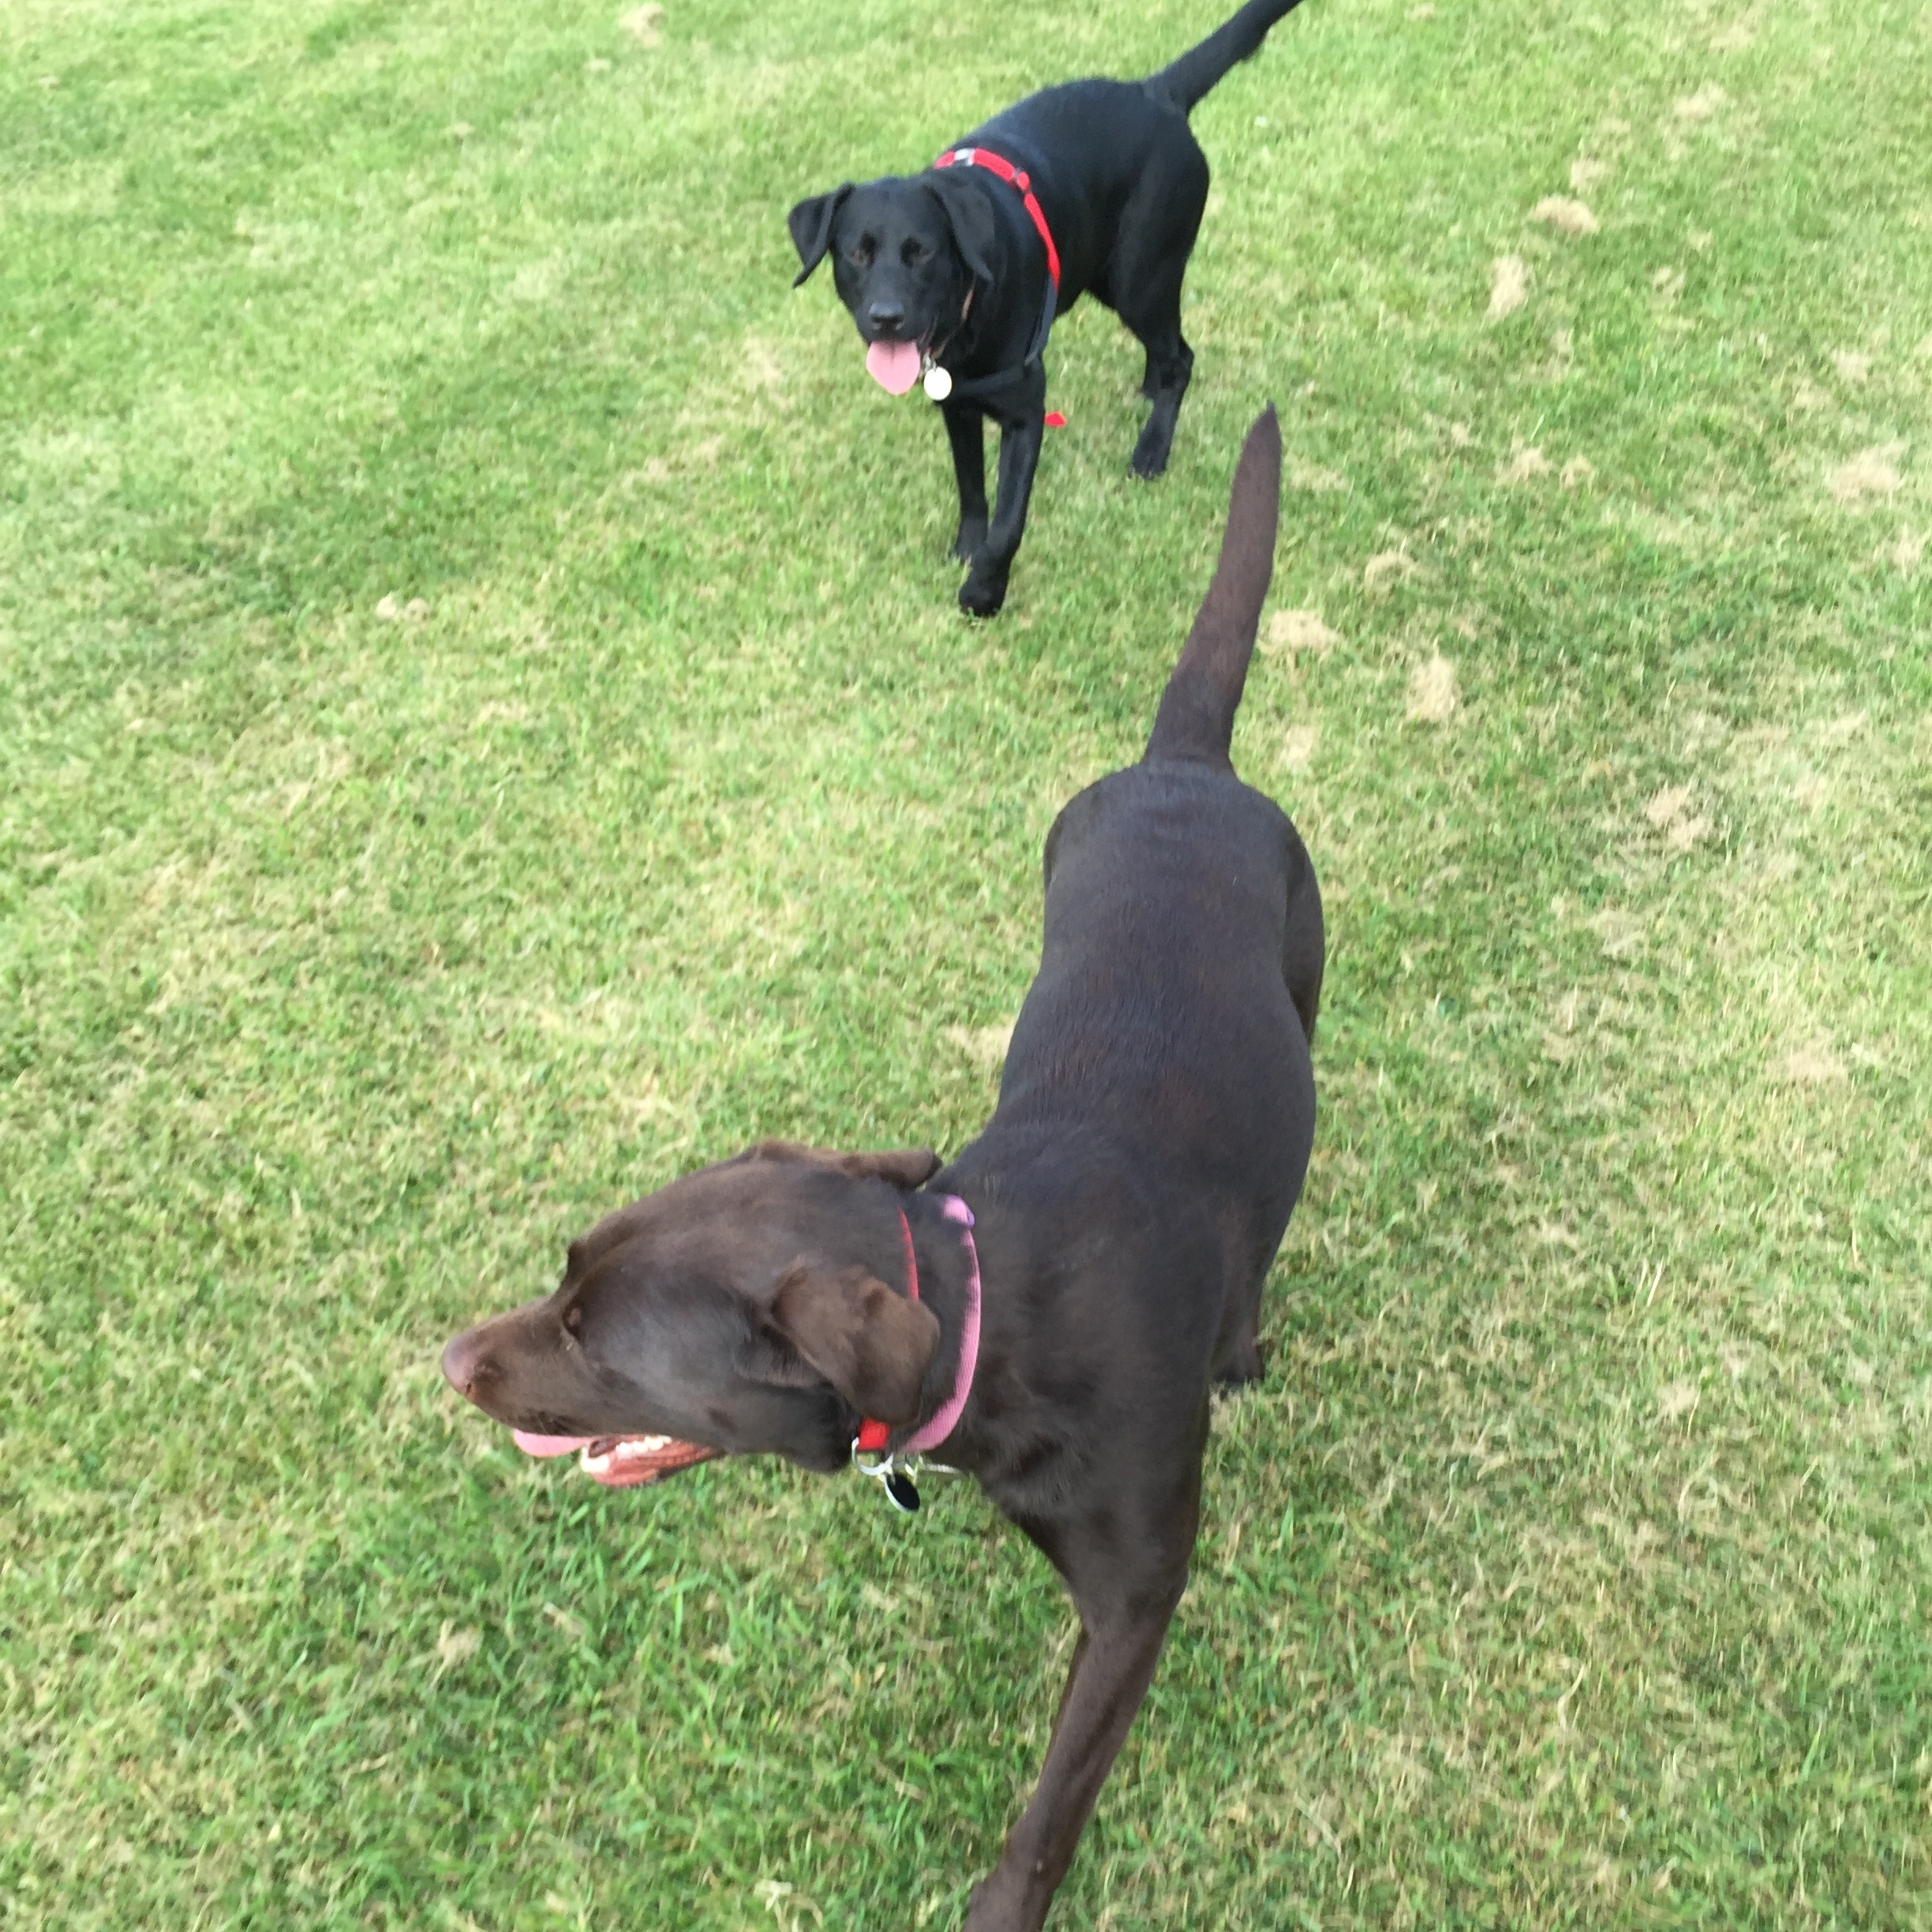 Polly & Harper - Lab sisters